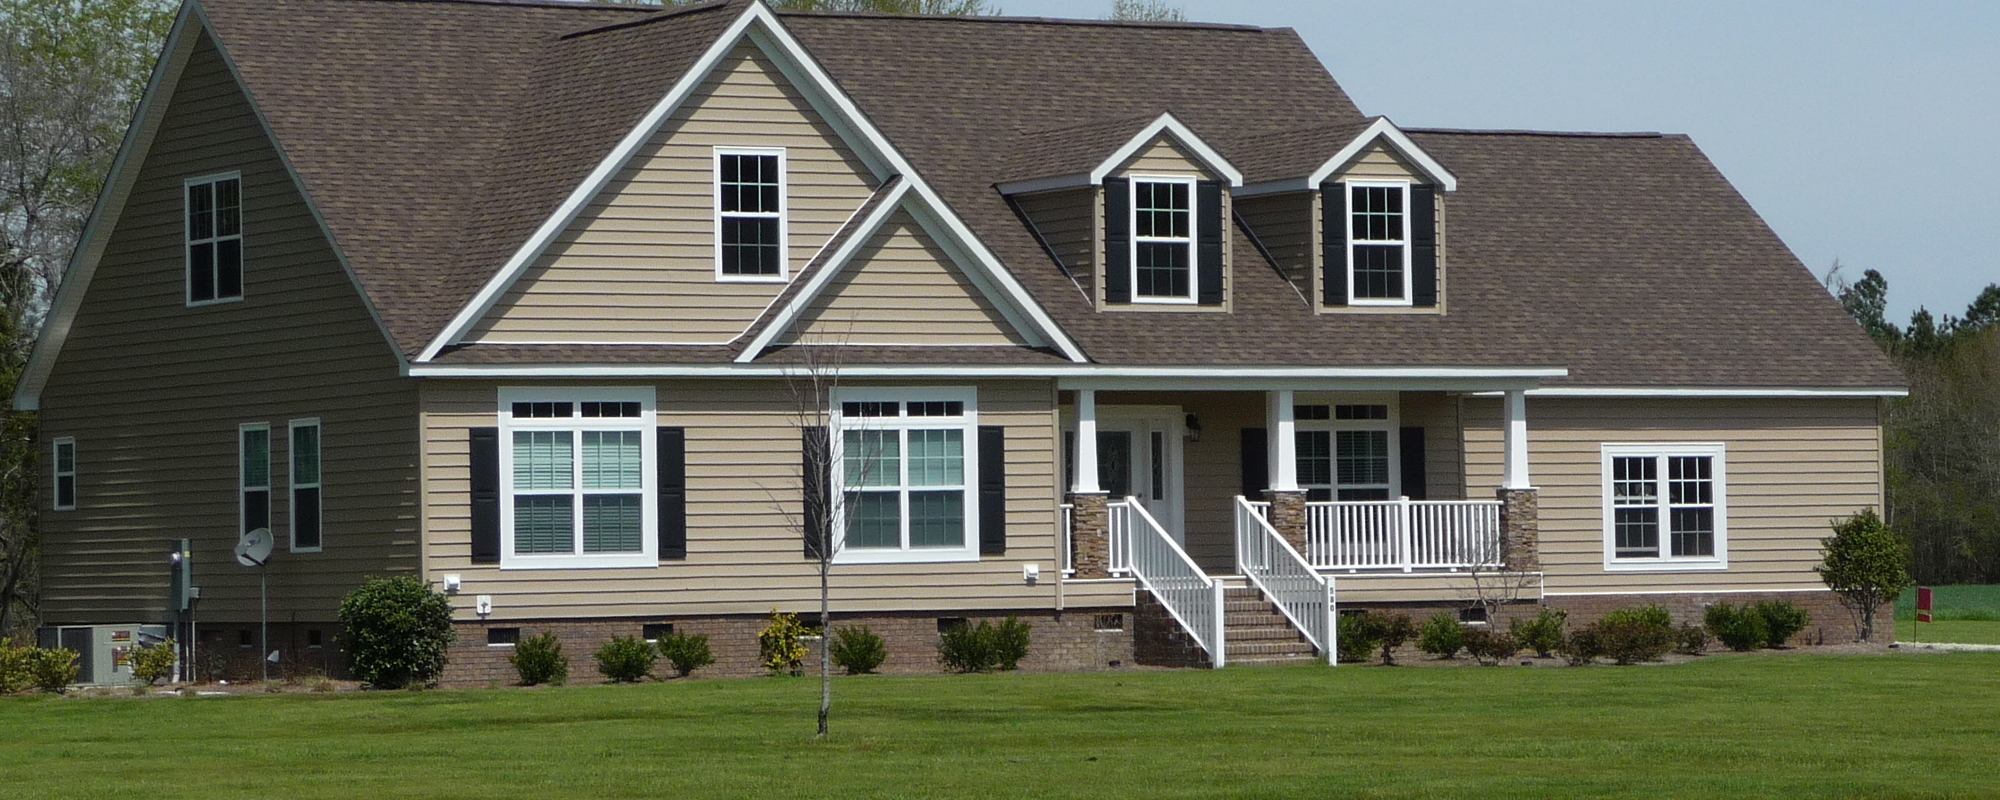 SouthBay Developers - Coastal NC Modular Home Builders | Affordable